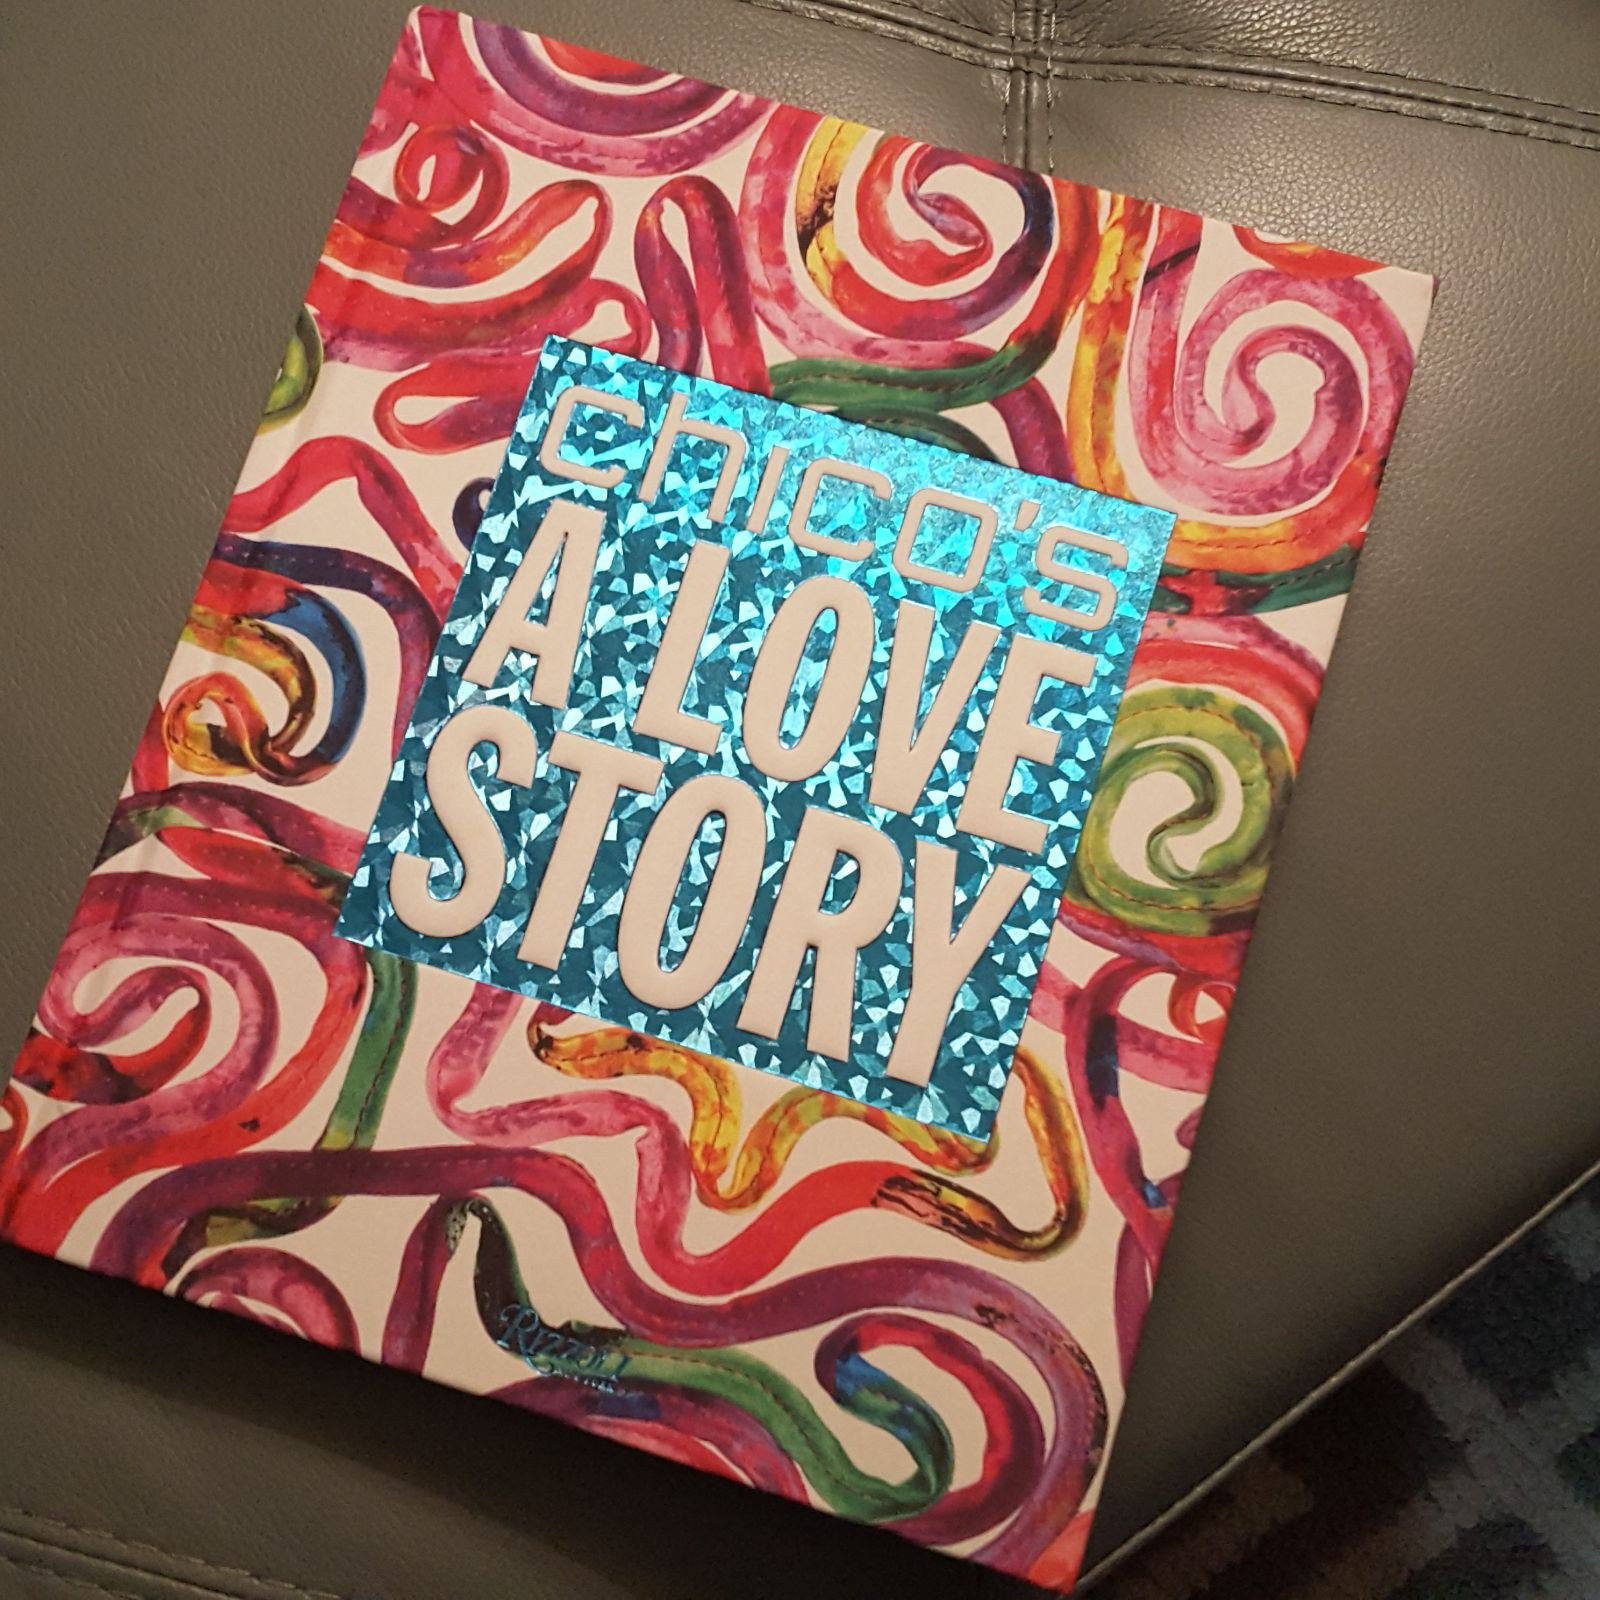 Chicos A Love Story Book